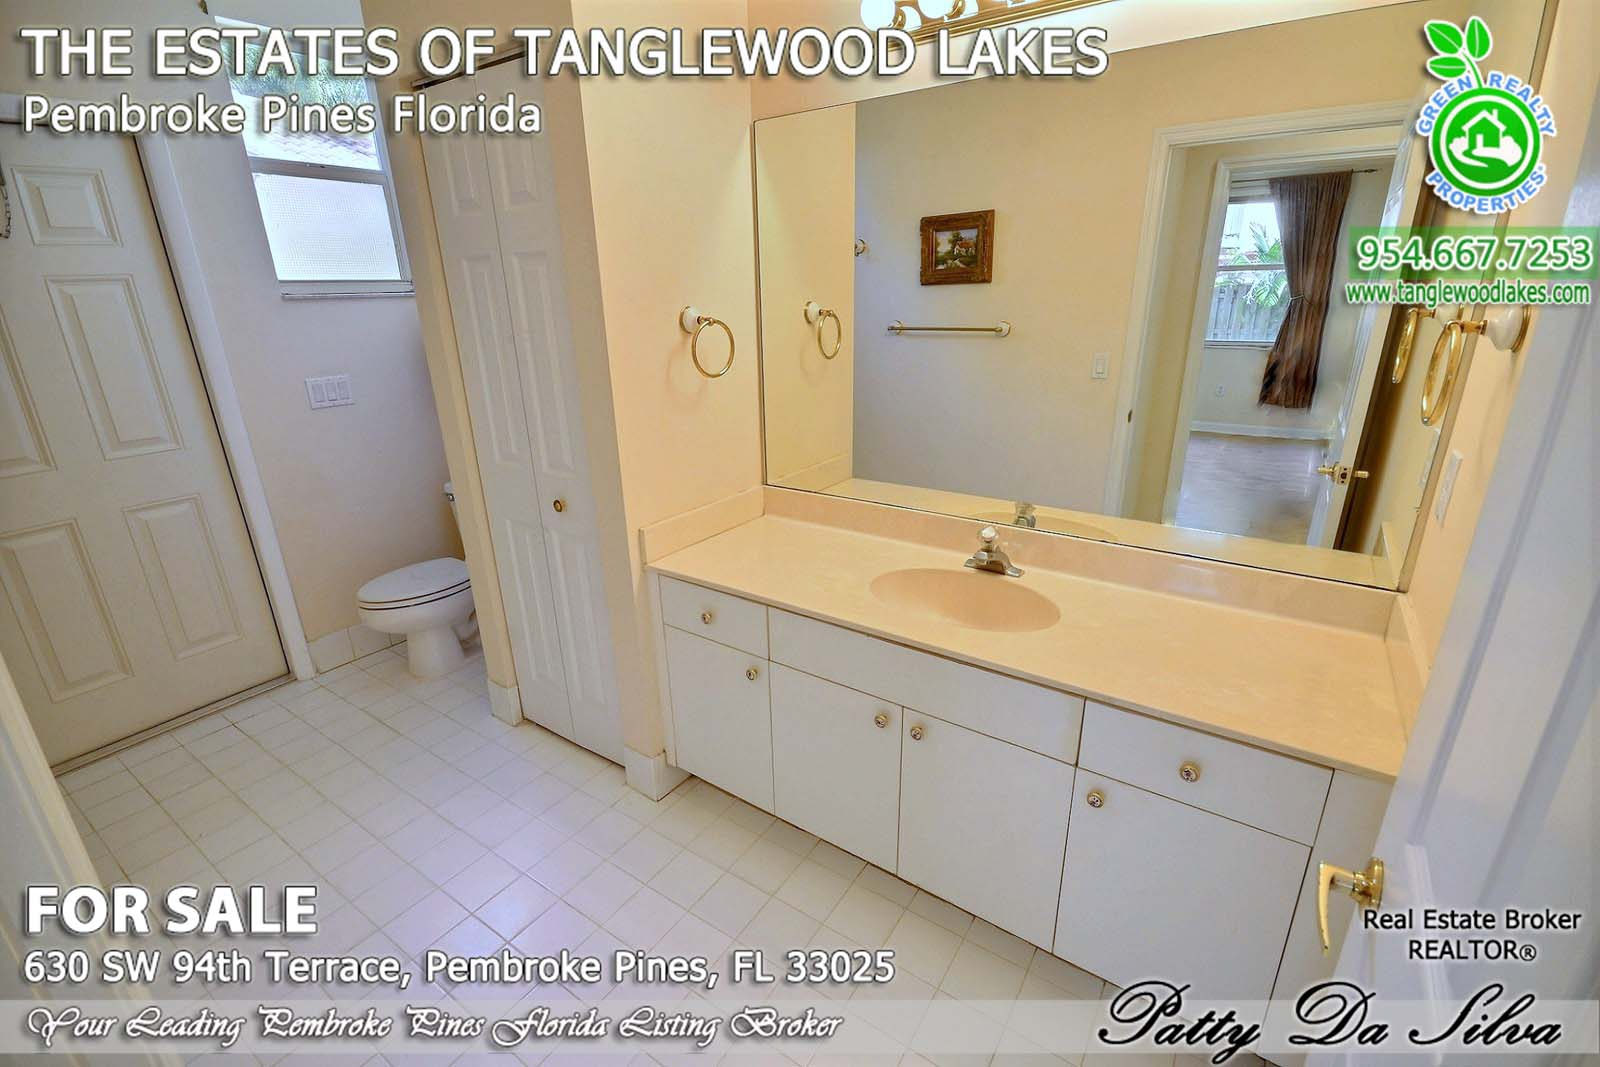 Tanglewood Lakes Community